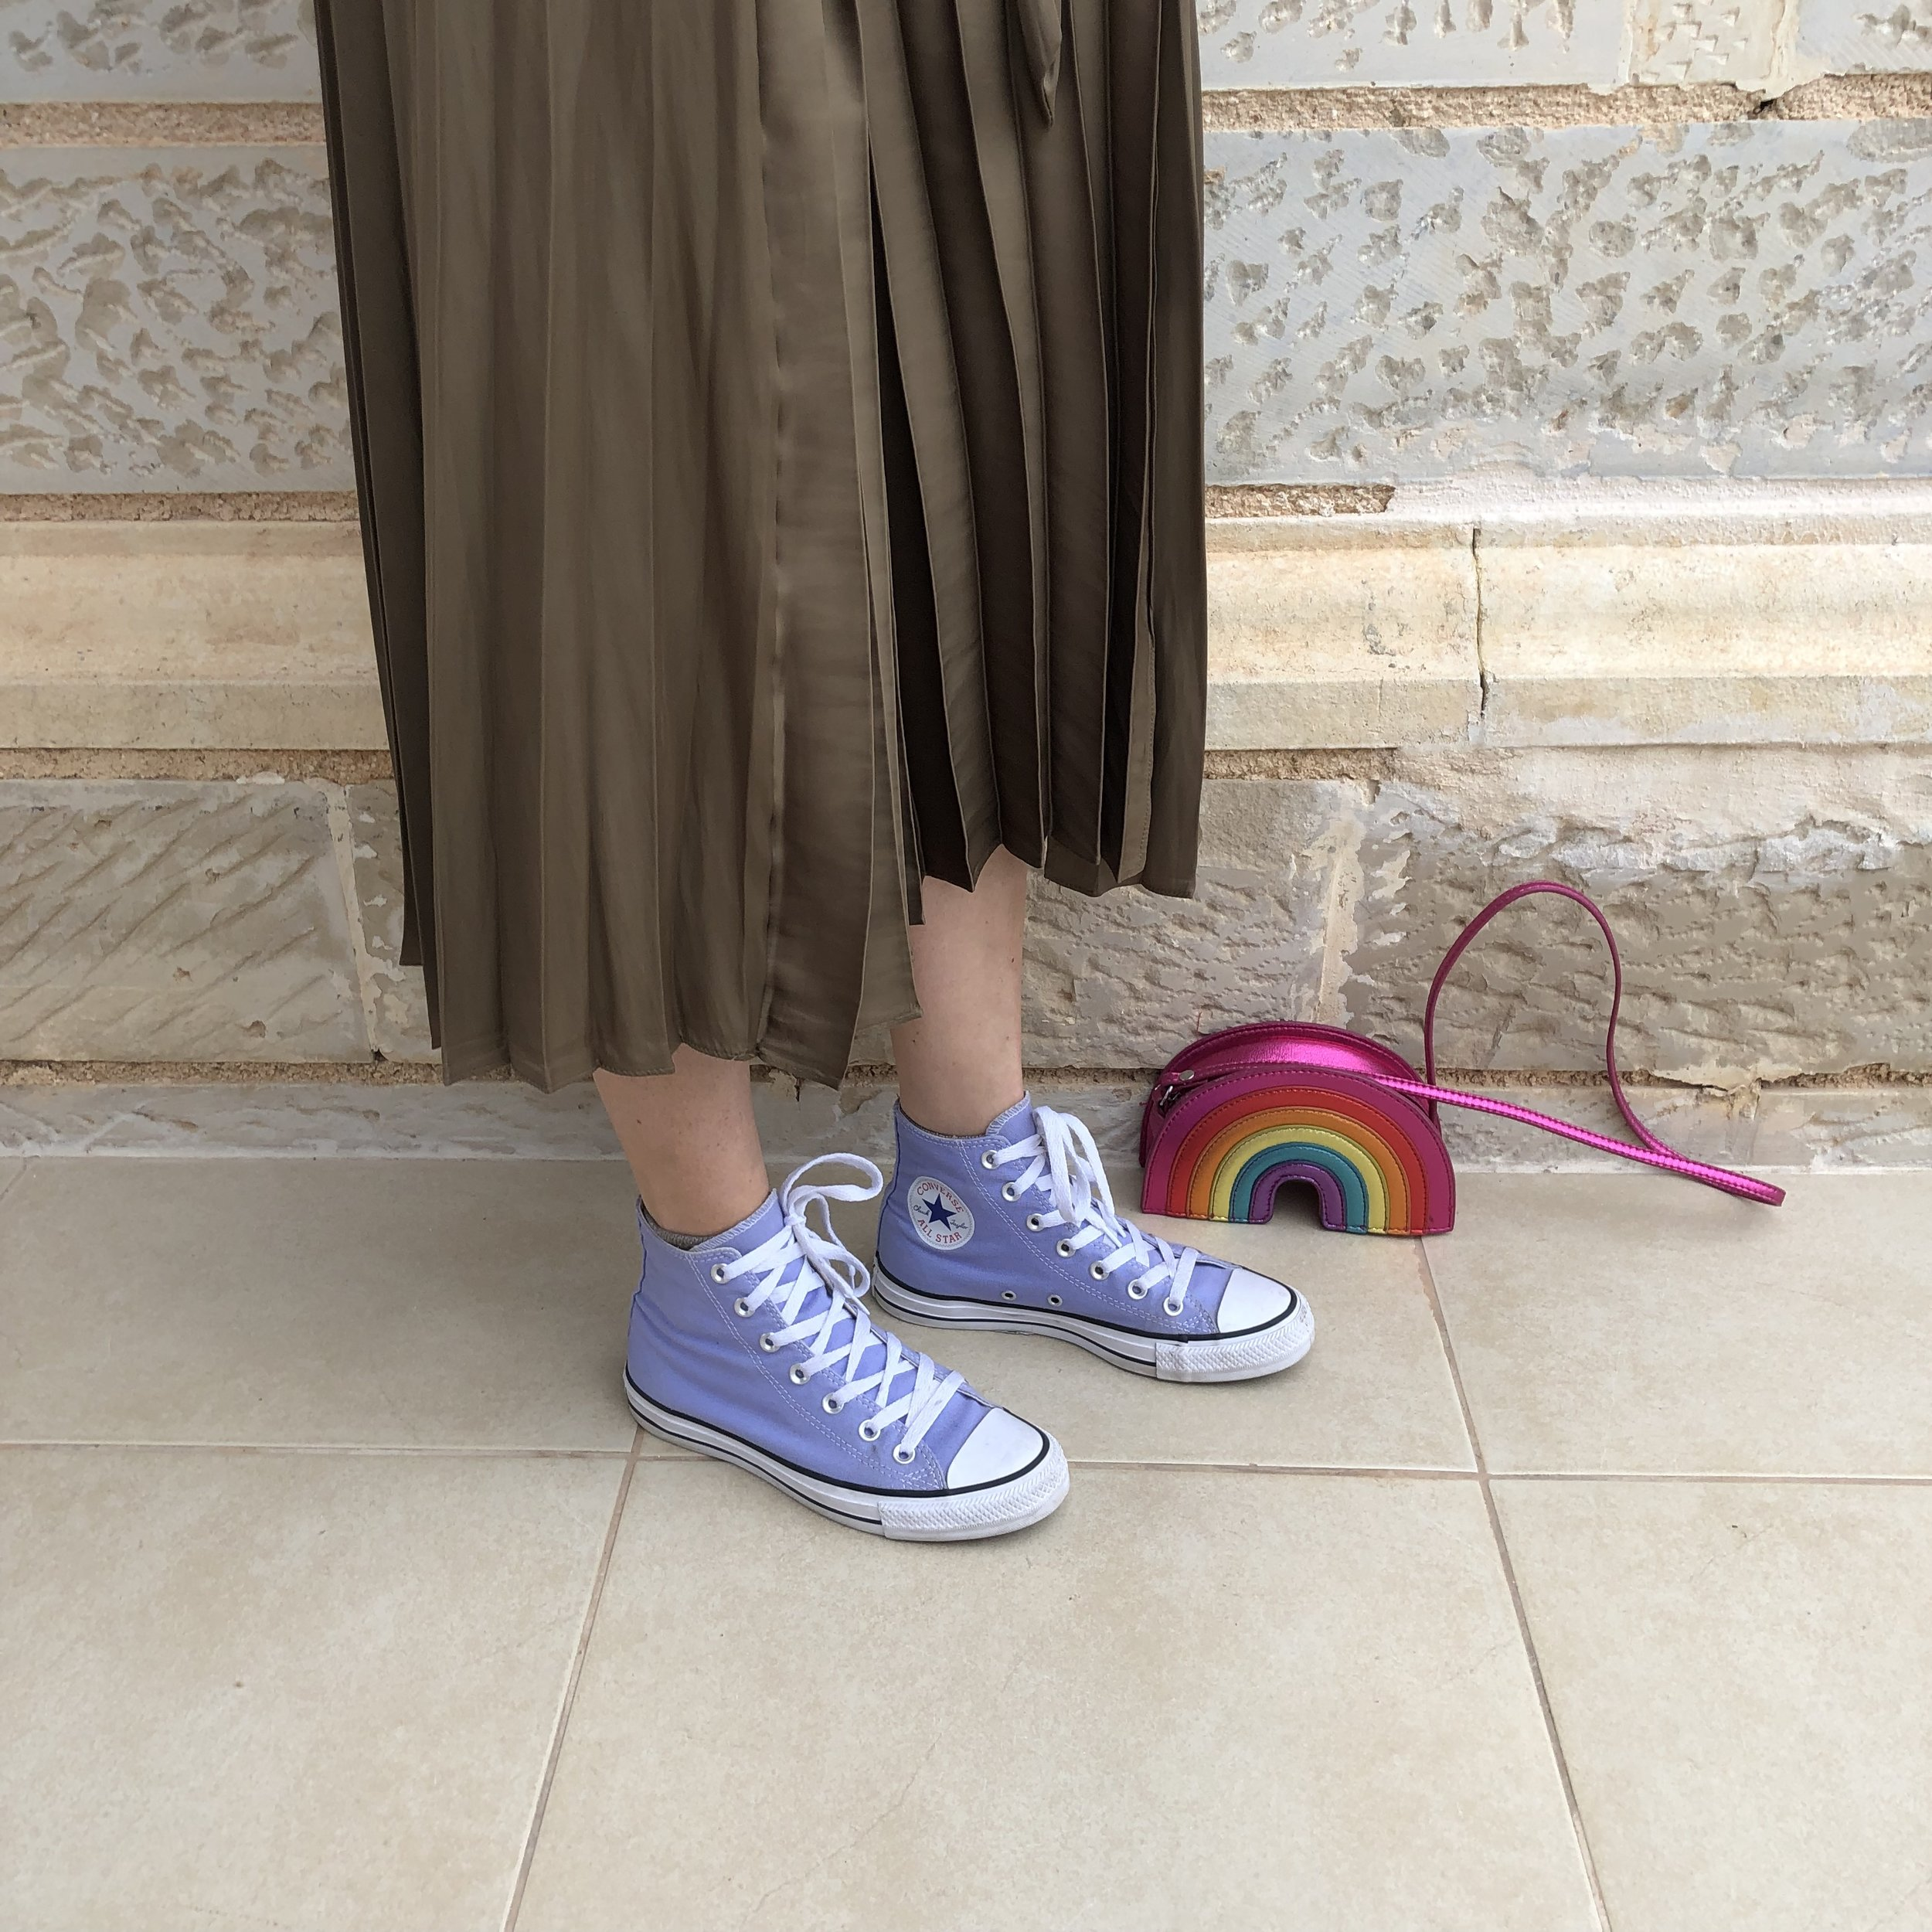 My lilac Converse bought in the sale last year at Office were such a great buy I wear them loads. I also loved borrowing my 3 year old's rainbow bag!!! Like I say love a statement bag.